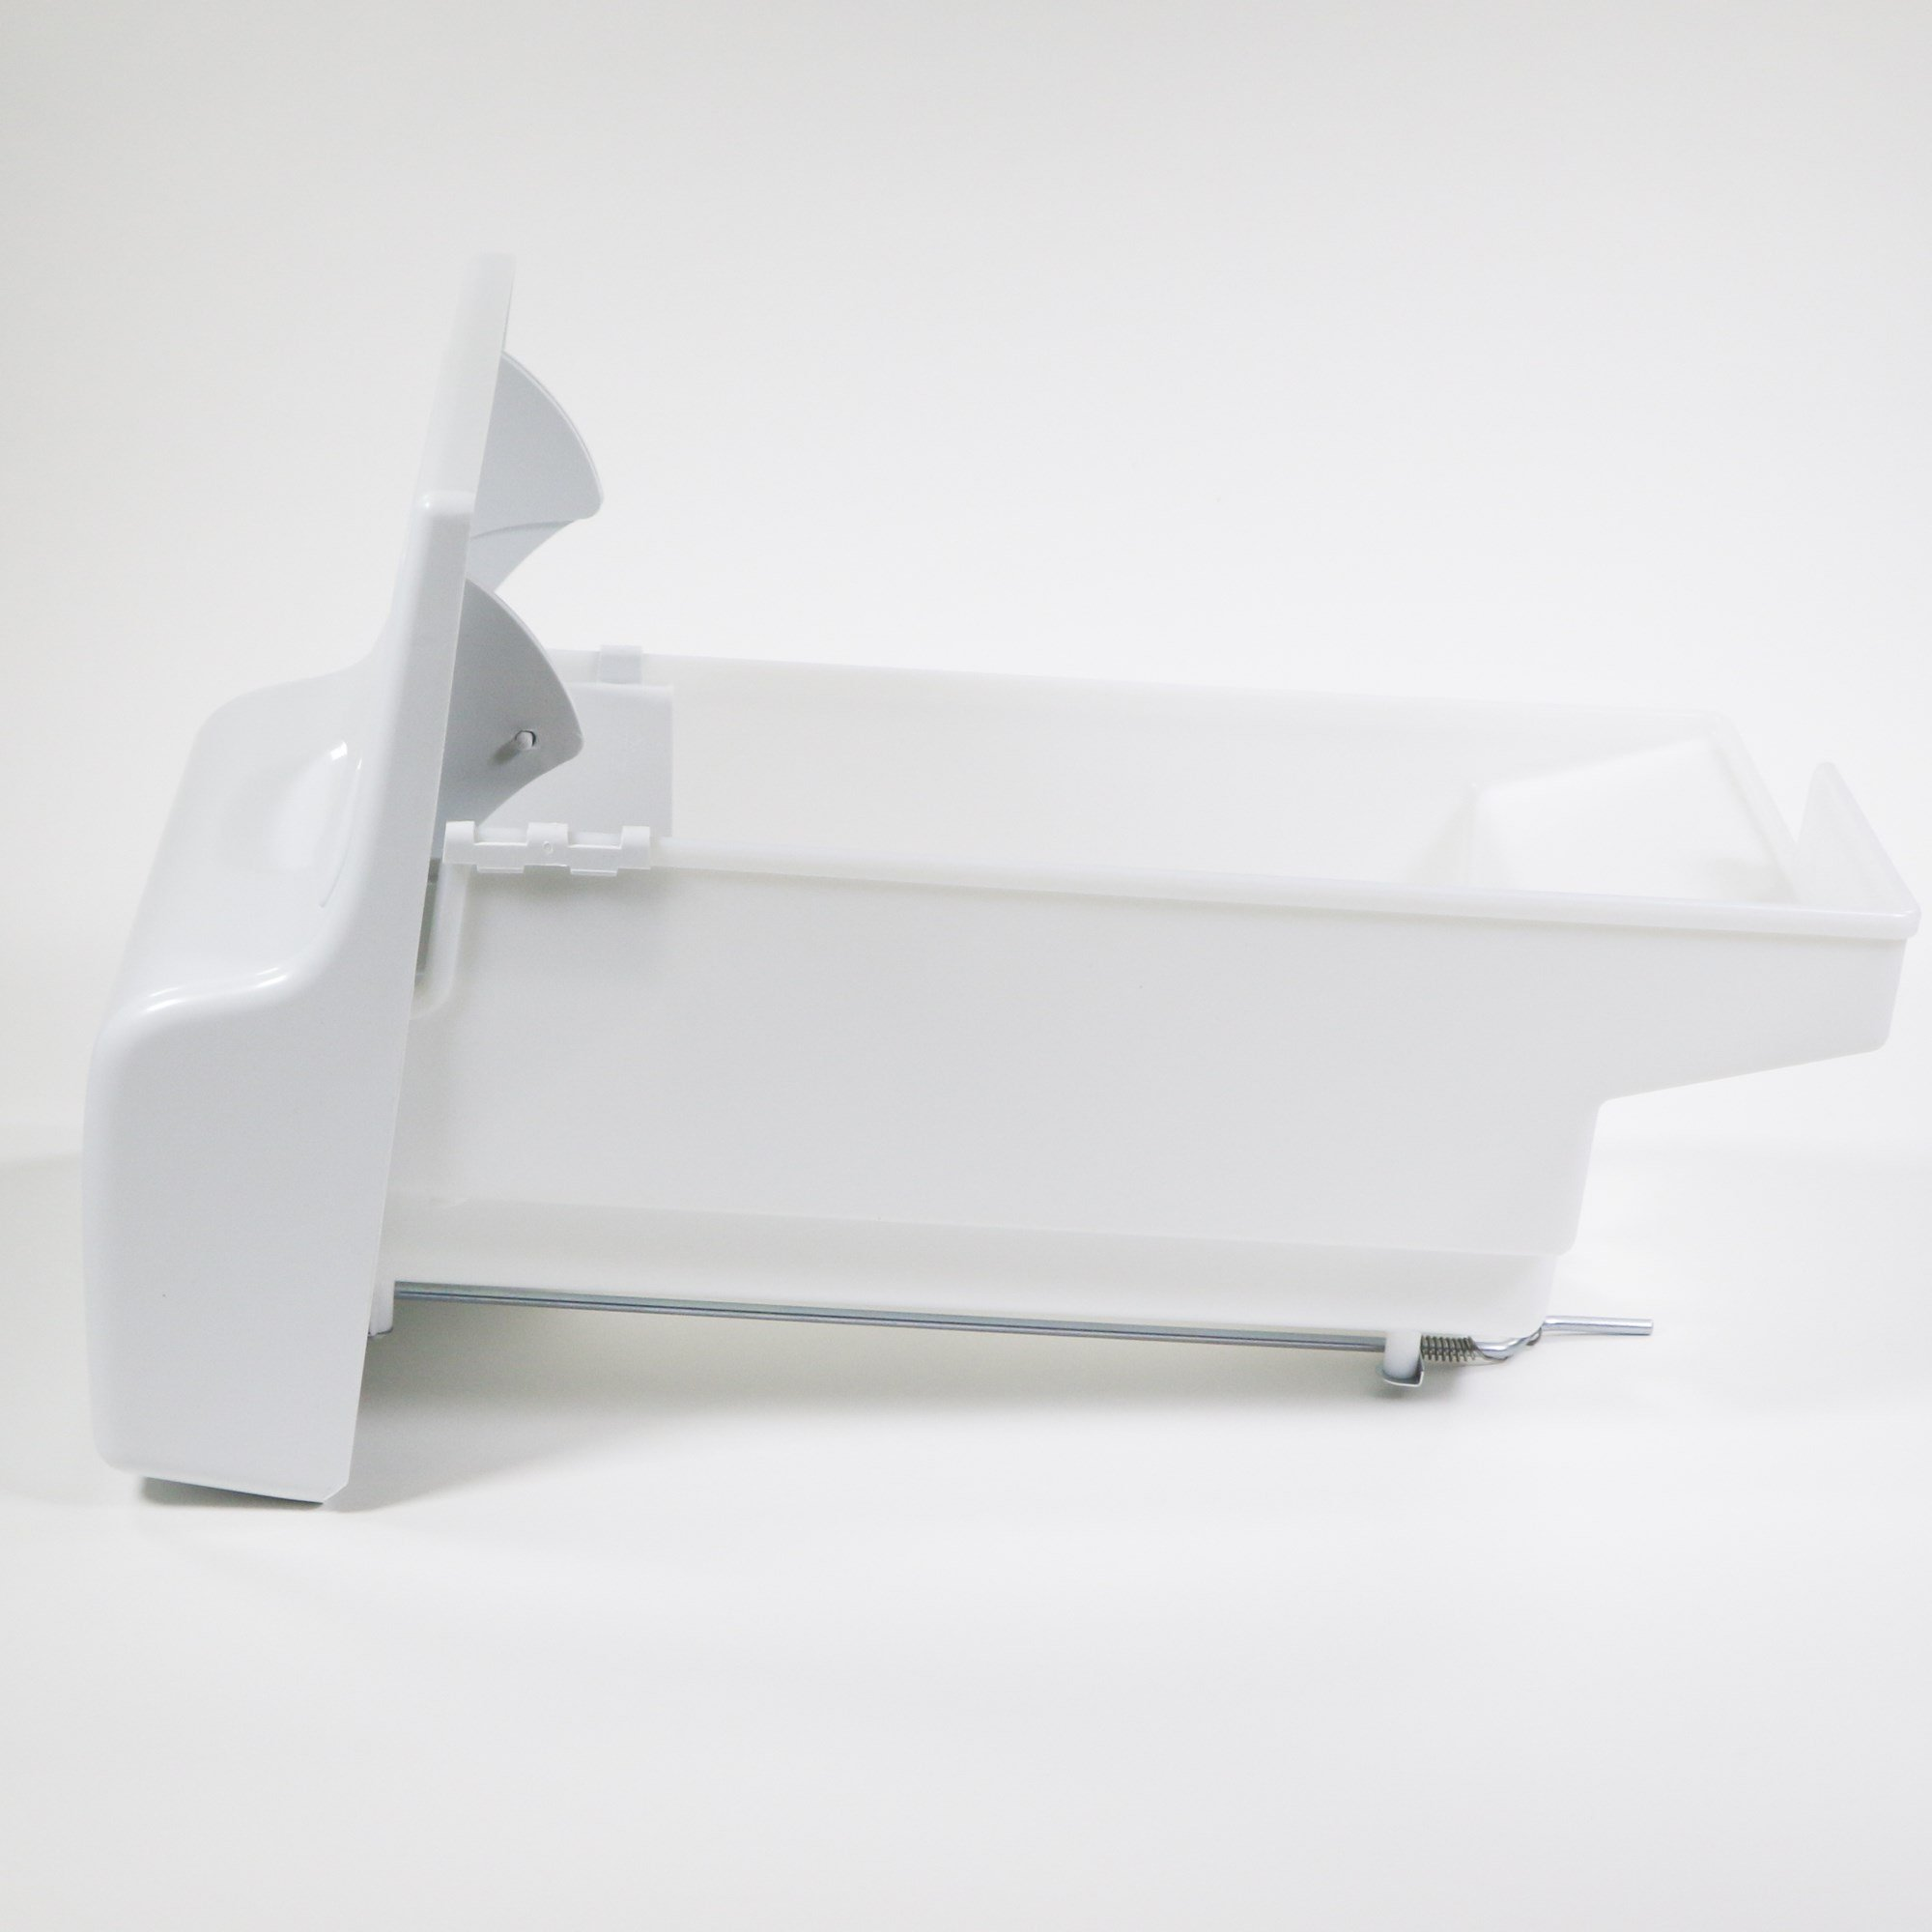 Frigidaire 241860803 Ice Container Assembly for Refrigerator